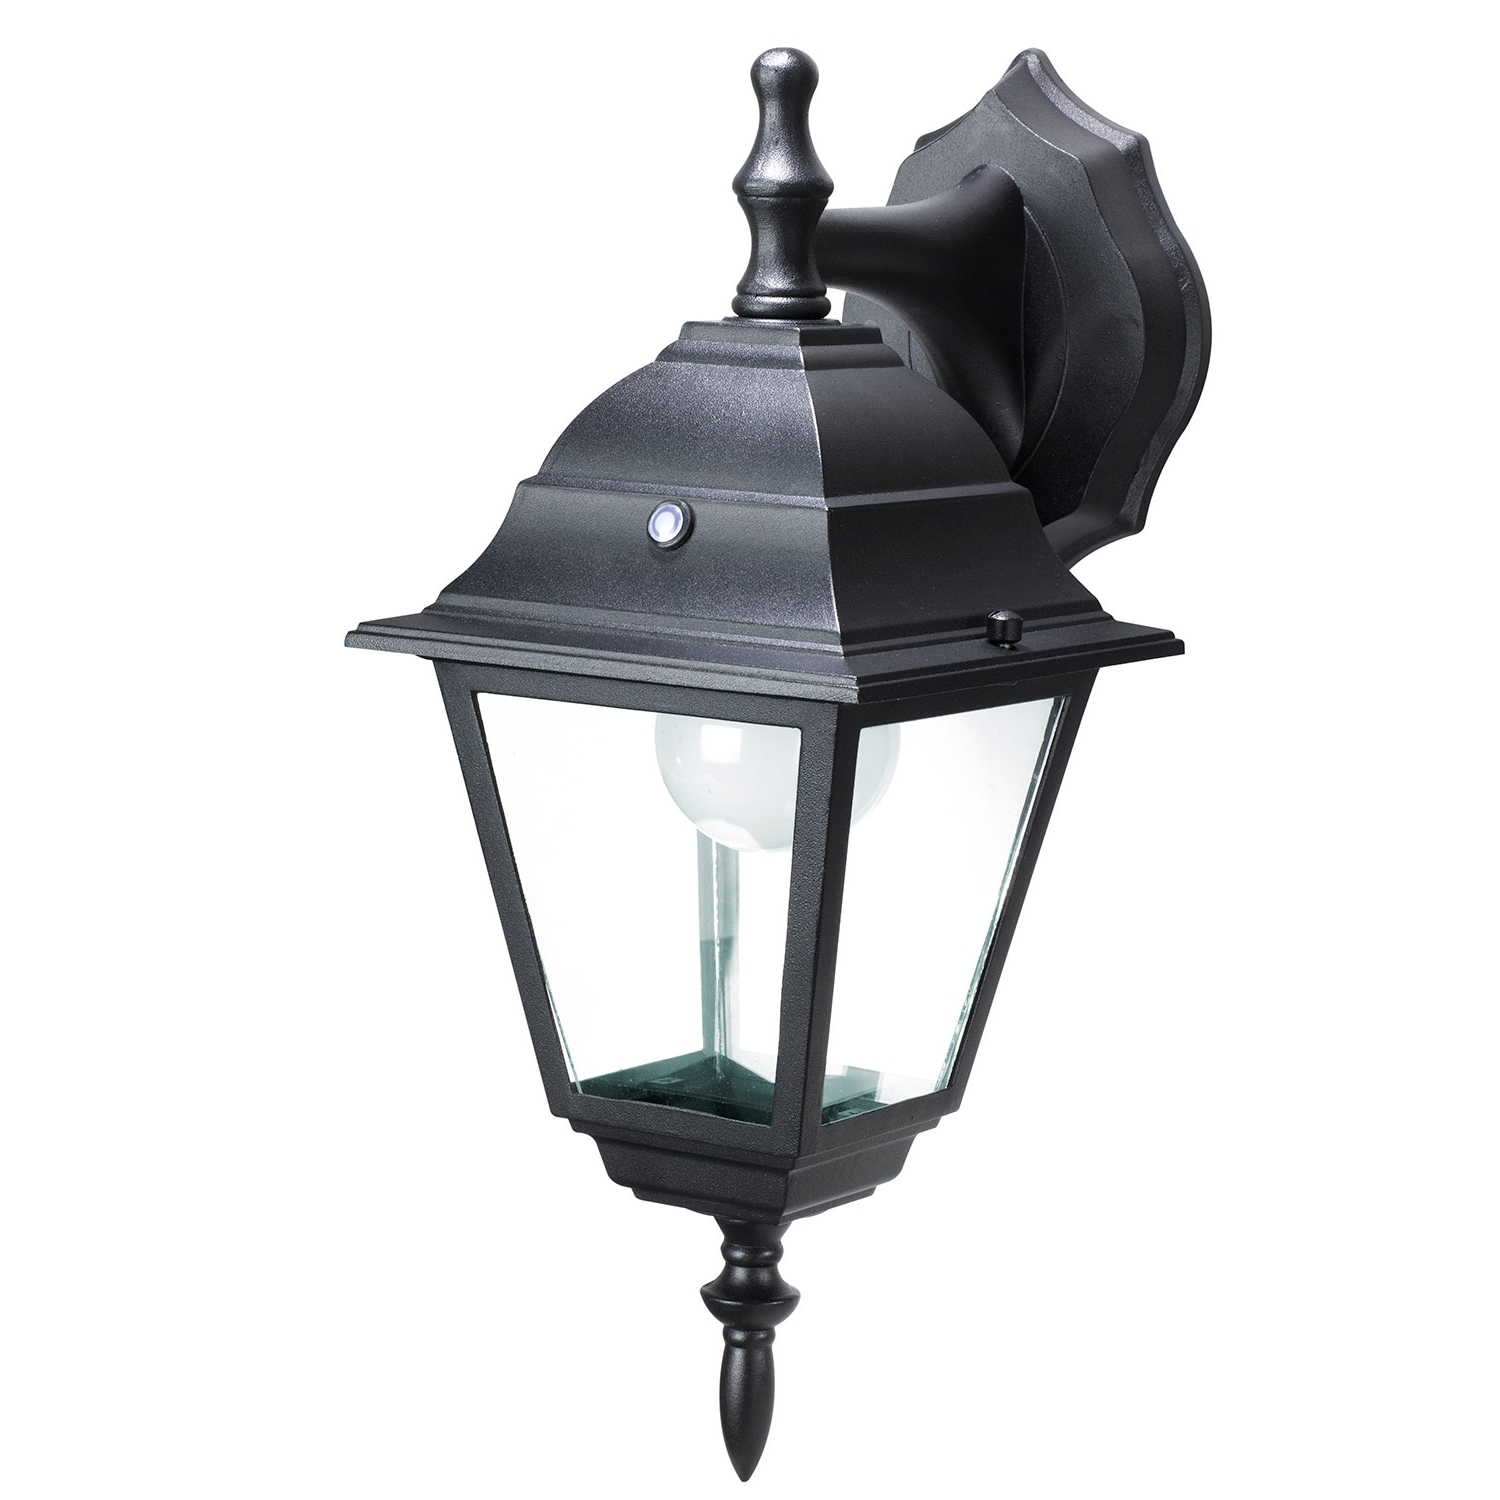 Honeywell Ss0501 08 Led Outdoor Wall Mount Lantern Light, 3000K, 400 Inside Latest Endon Lighting Outdoor Wall Lanterns (View 11 of 20)